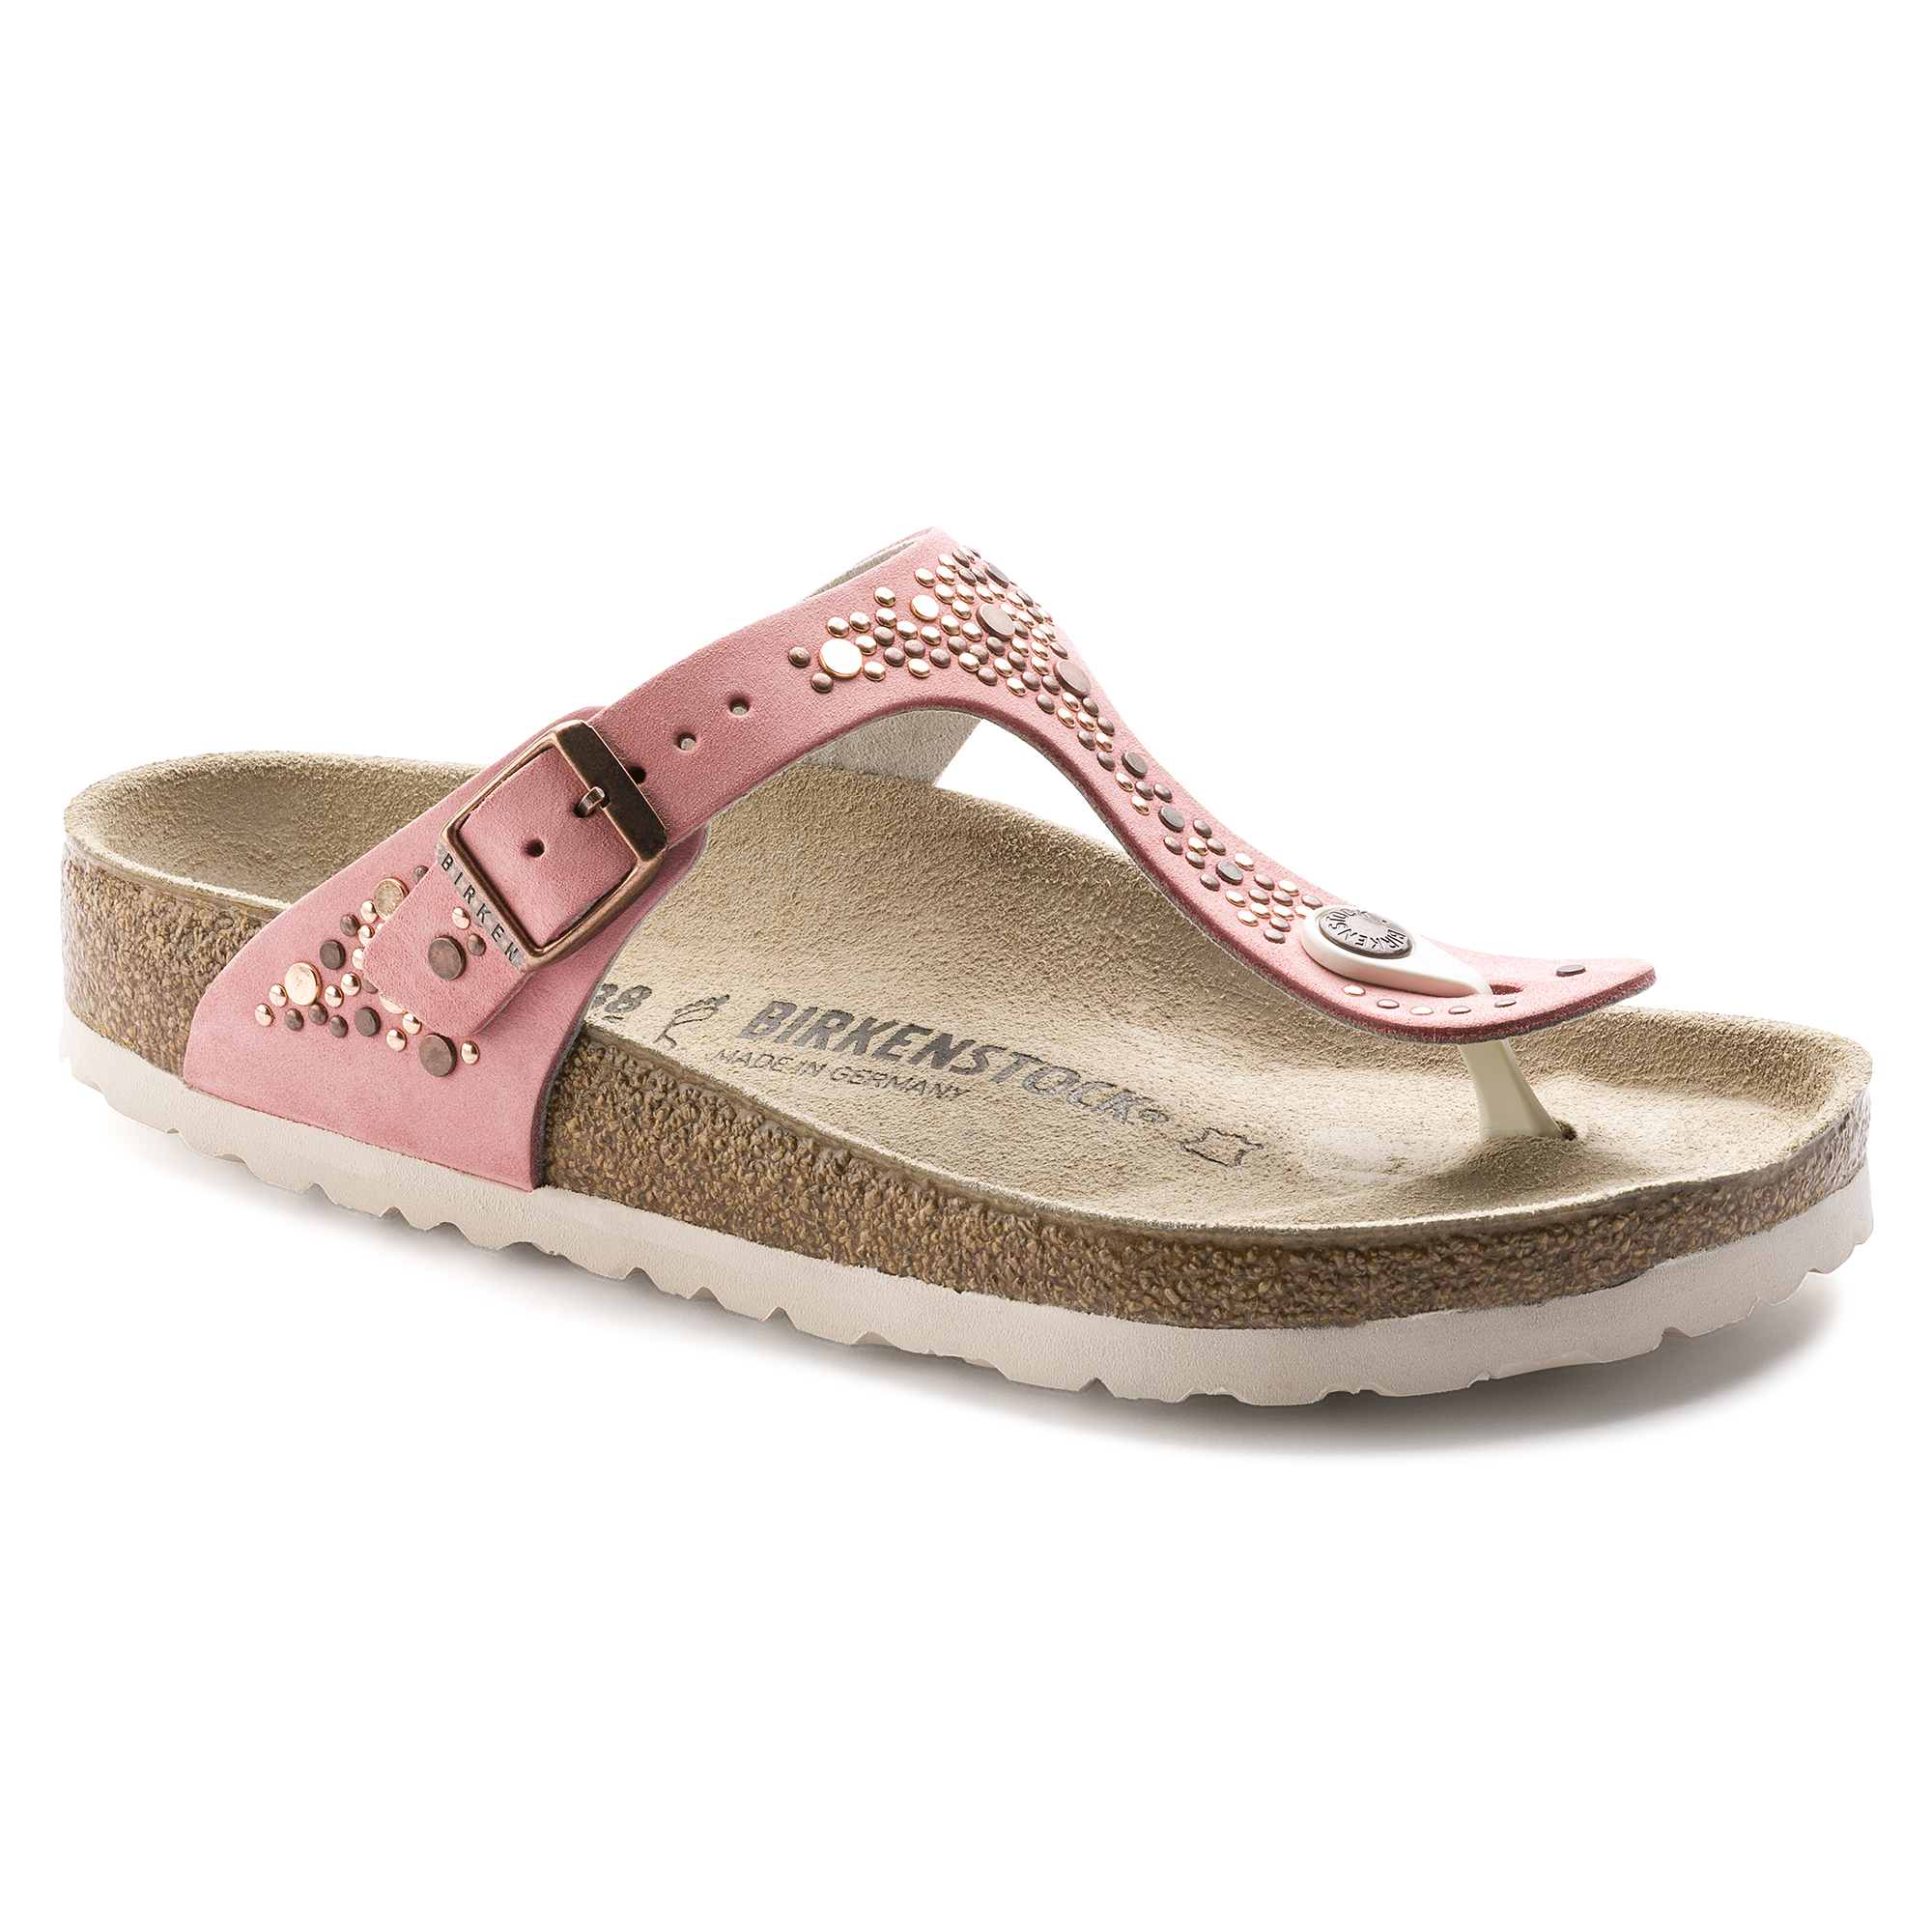 0664f43379b4 Gizeh Nubuck Leather Rose